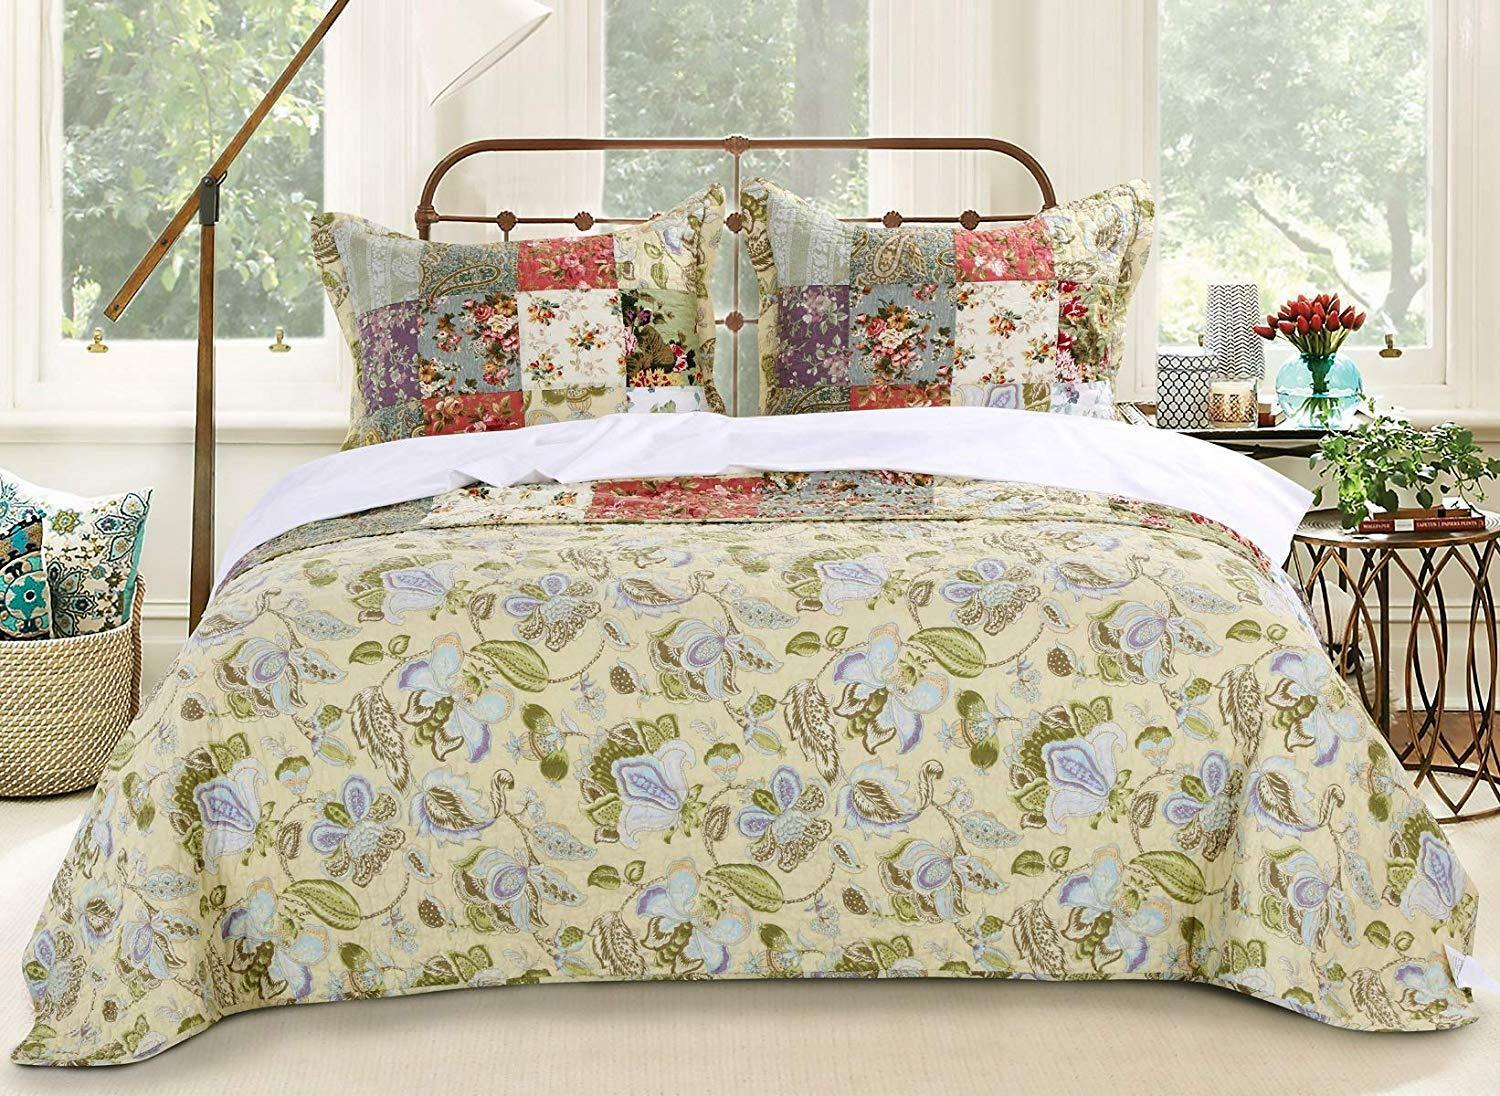 BEAUTIFUL PATCHWORK COUNTRY VINTAGE WHITE PINK FLORAL pink GREEN blueeeeeE QUILT SET